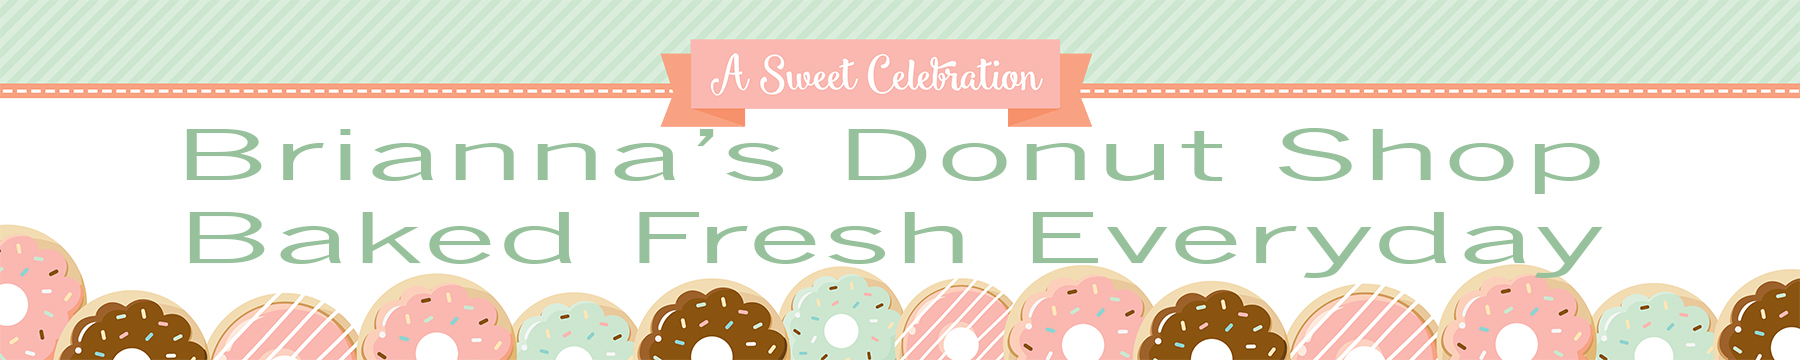 Donut Party - Personalized Birthday Party Banners thumbnail